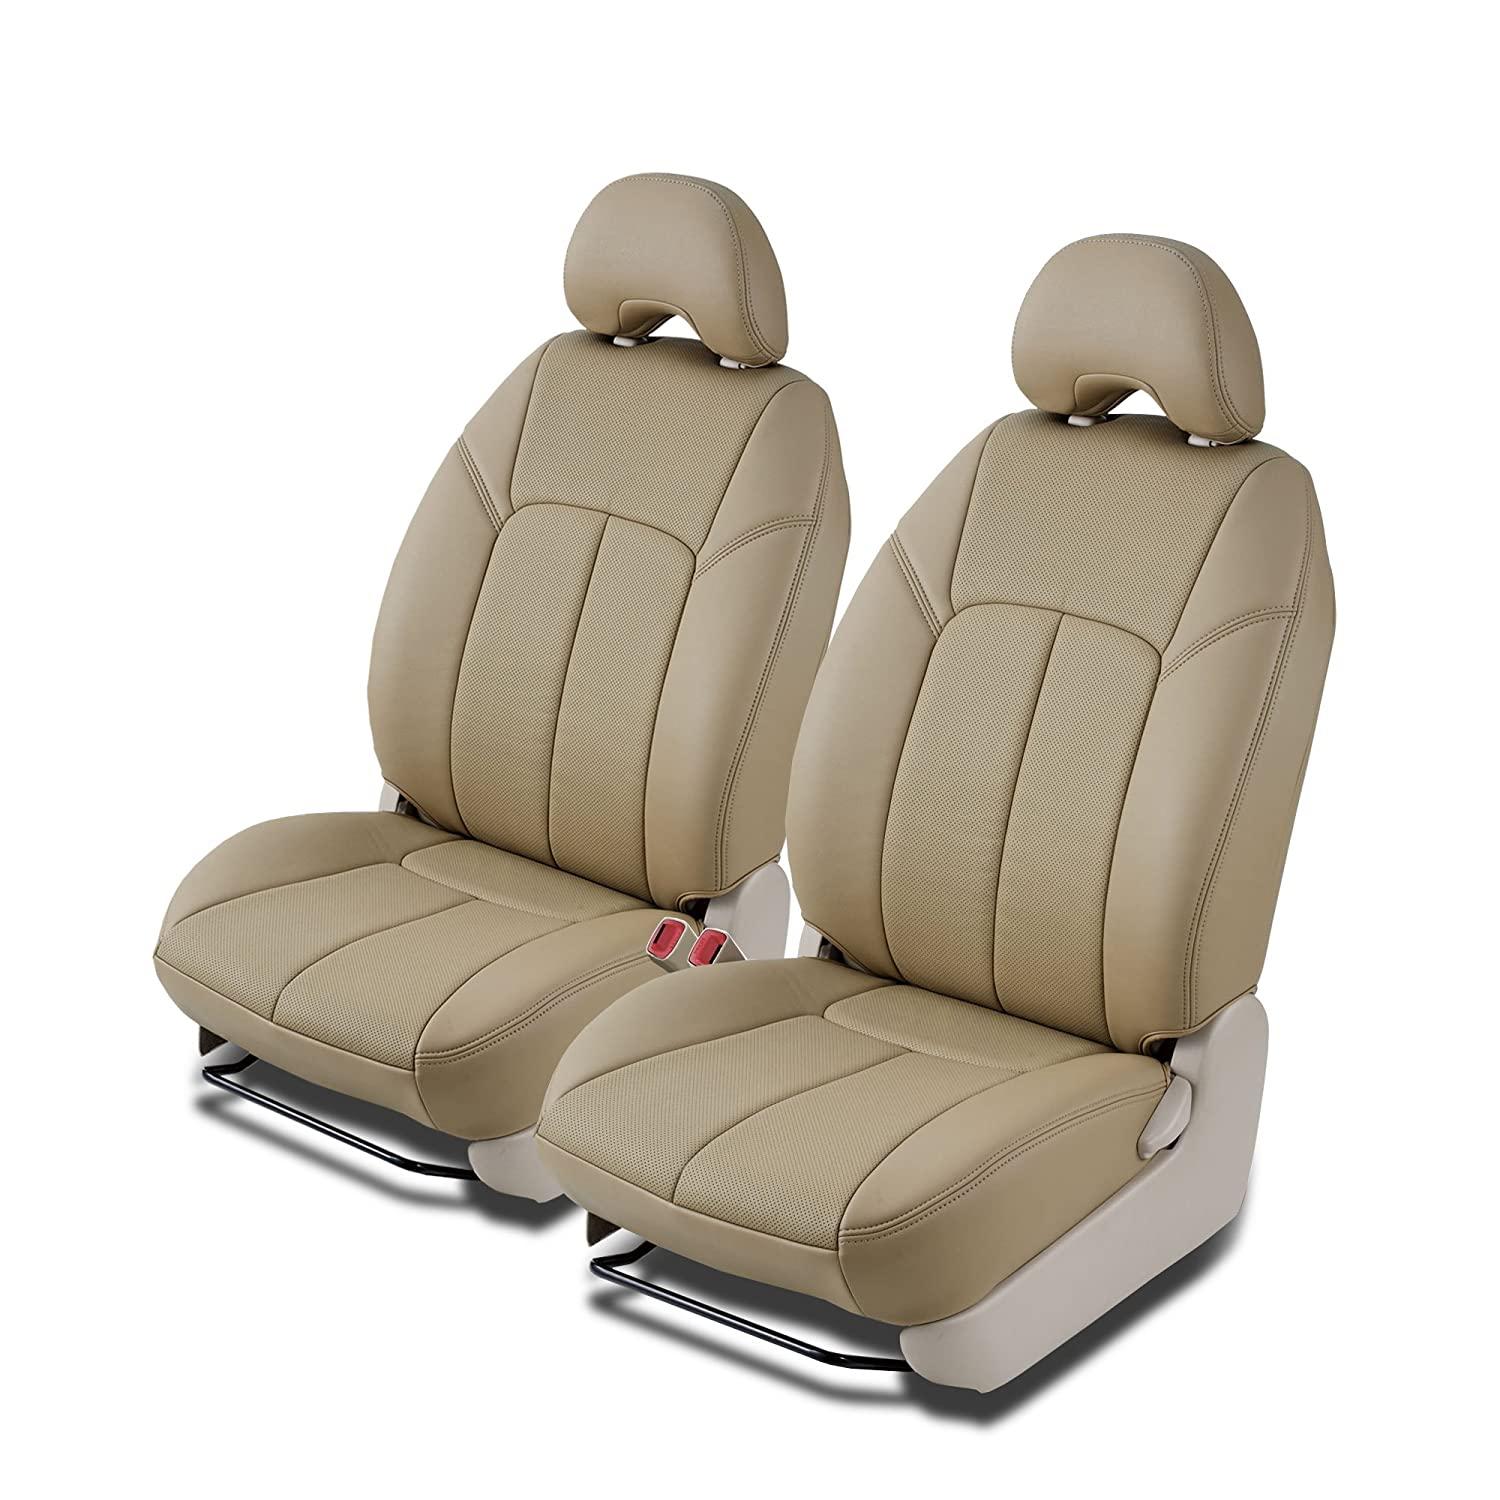 Clazzio 203031tann Tan Leather Front Row Seat Cover for Toyota Venza